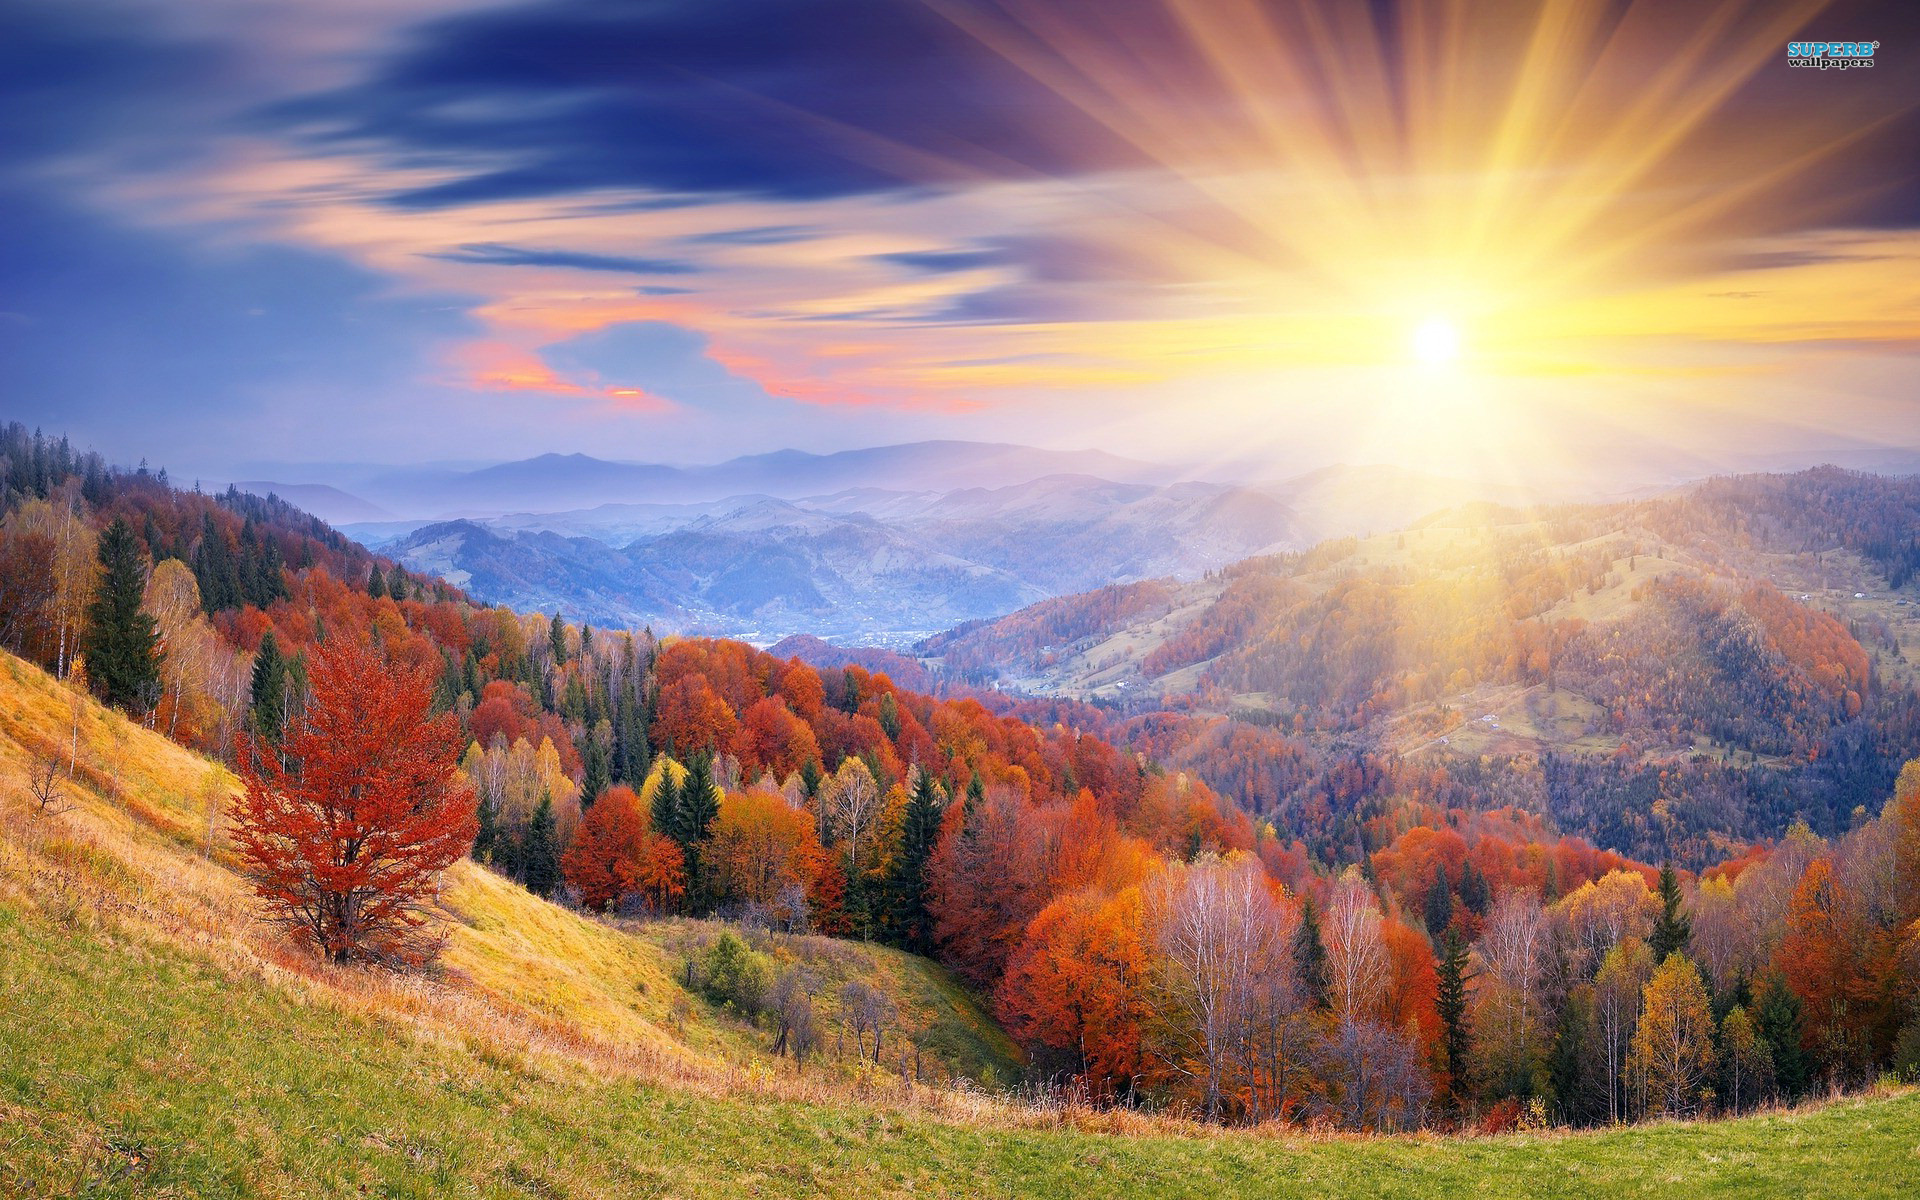 sunrise-over-the-mountains-nature